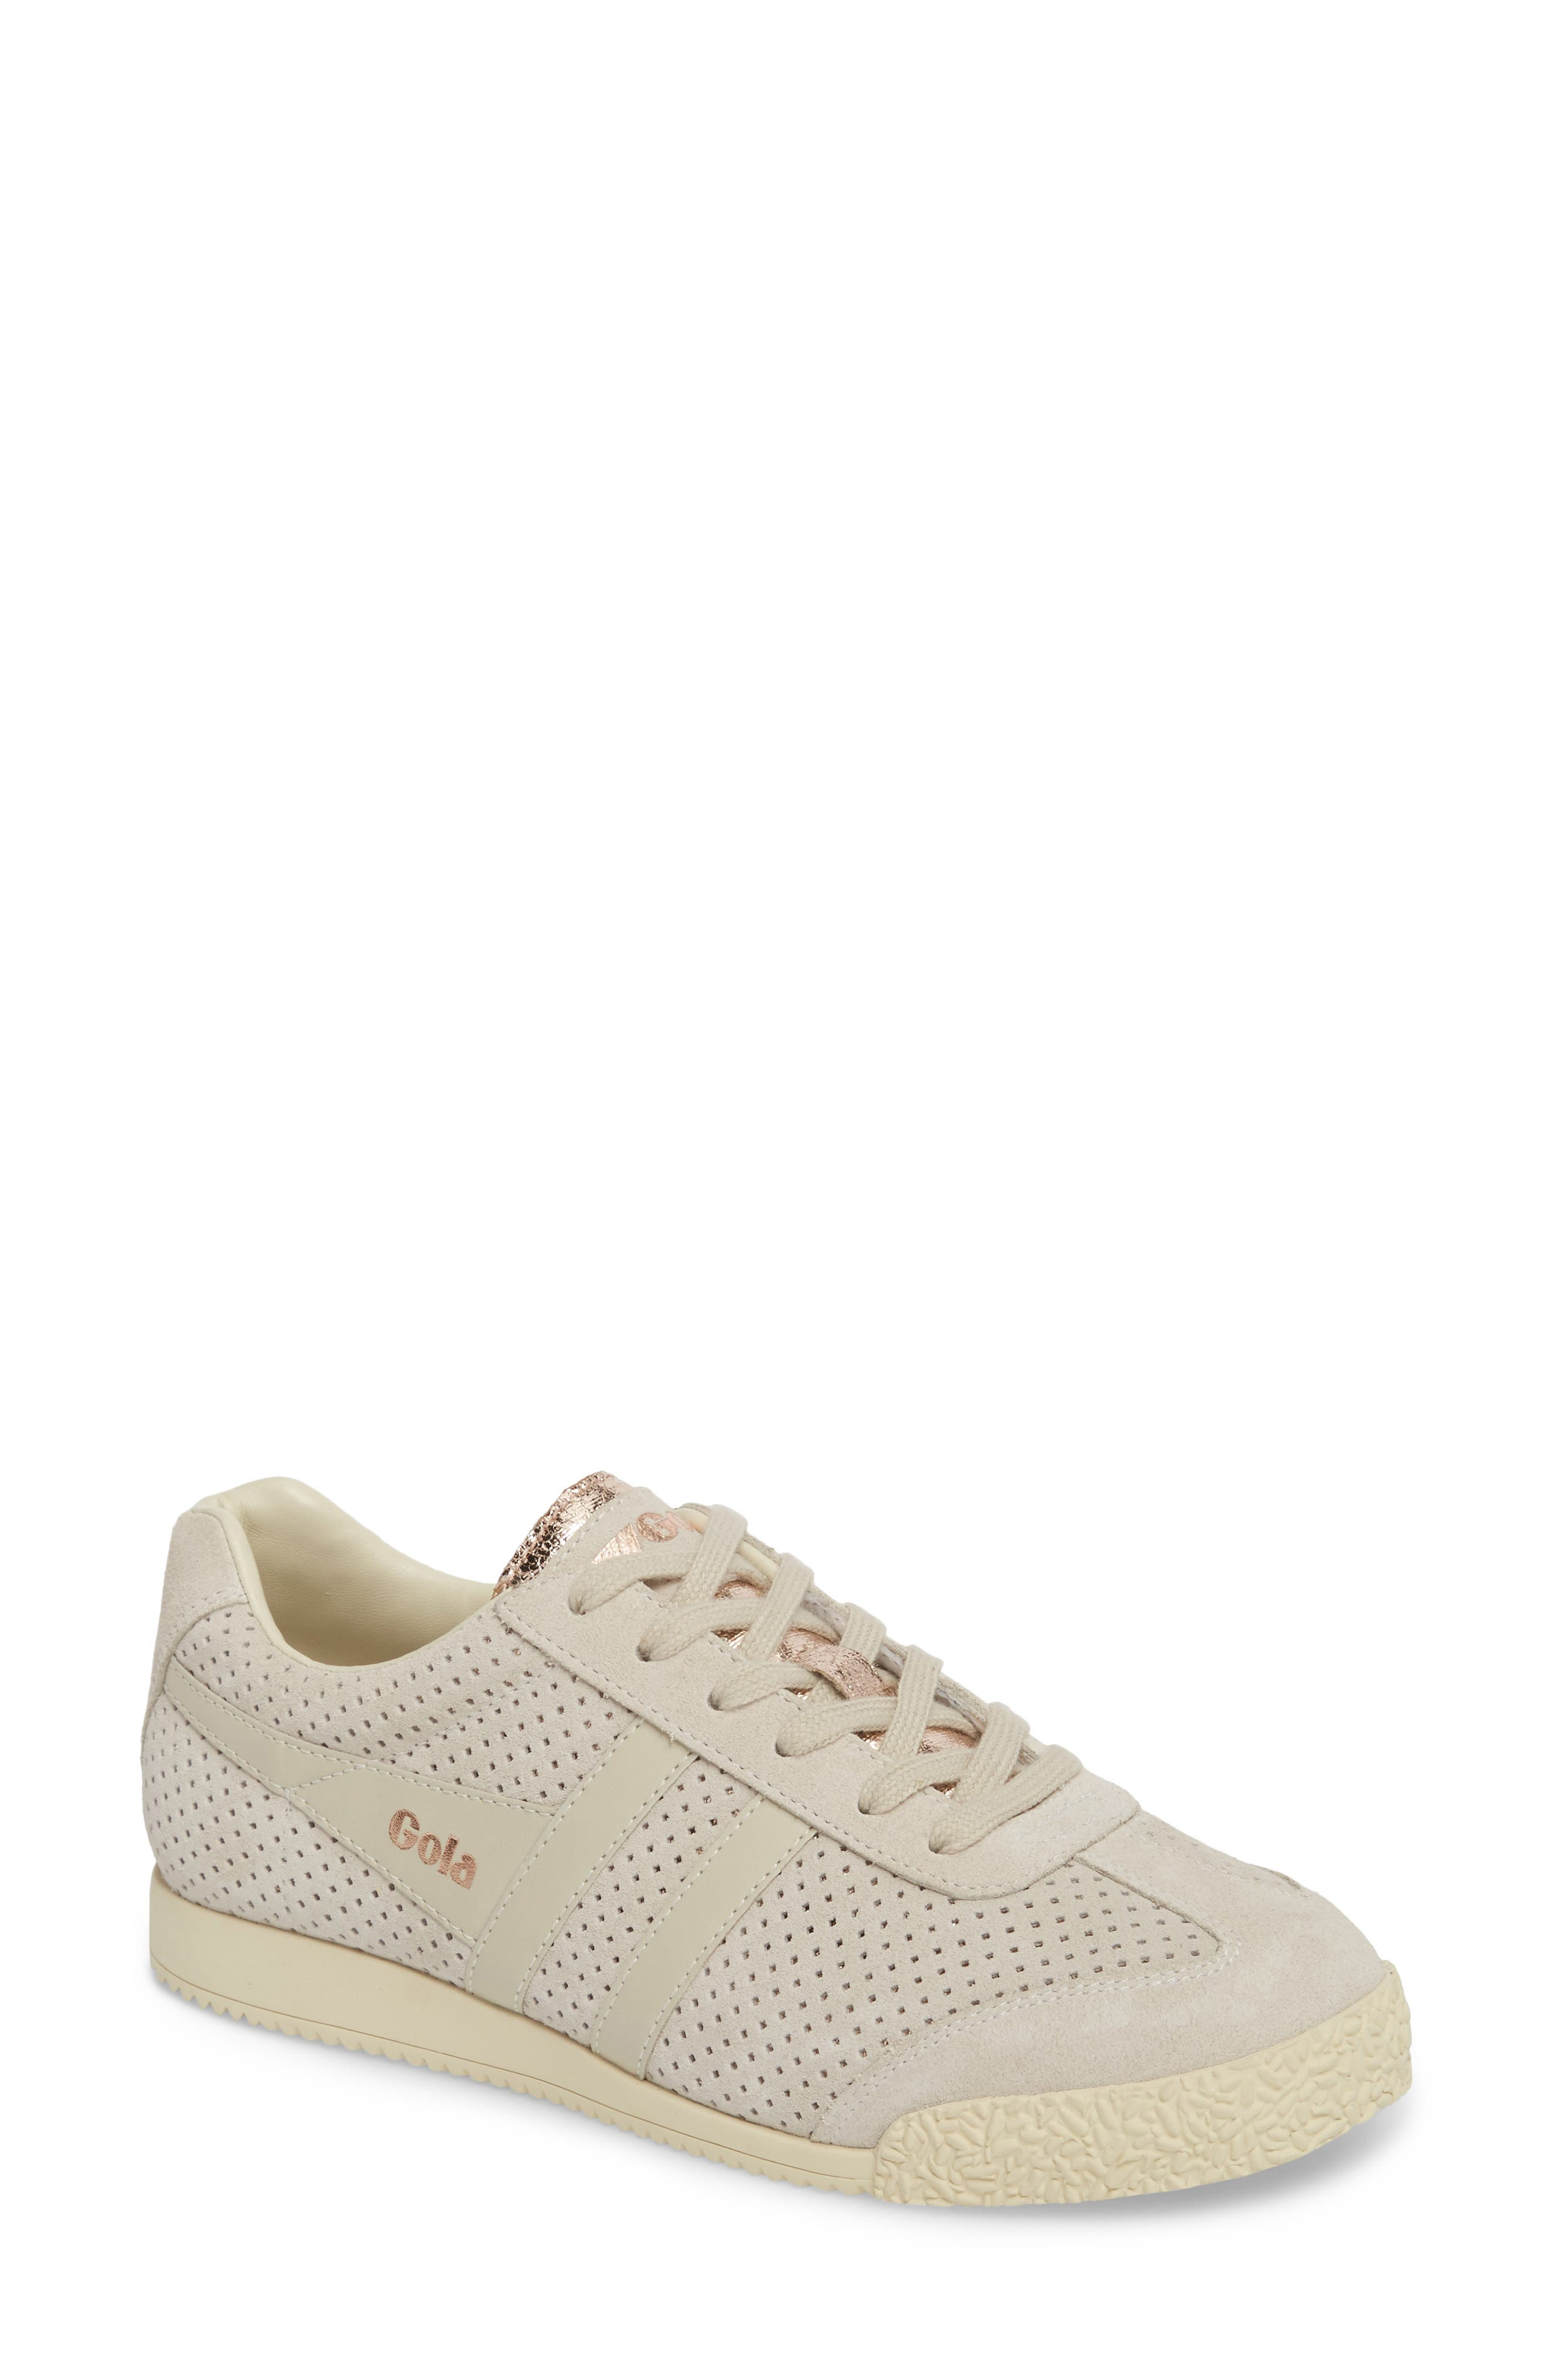 Harrier Glimmer Suede Low Top Sneaker,                         Main,                         color, WINDCHIME/ GOLD/ OFF WHITE